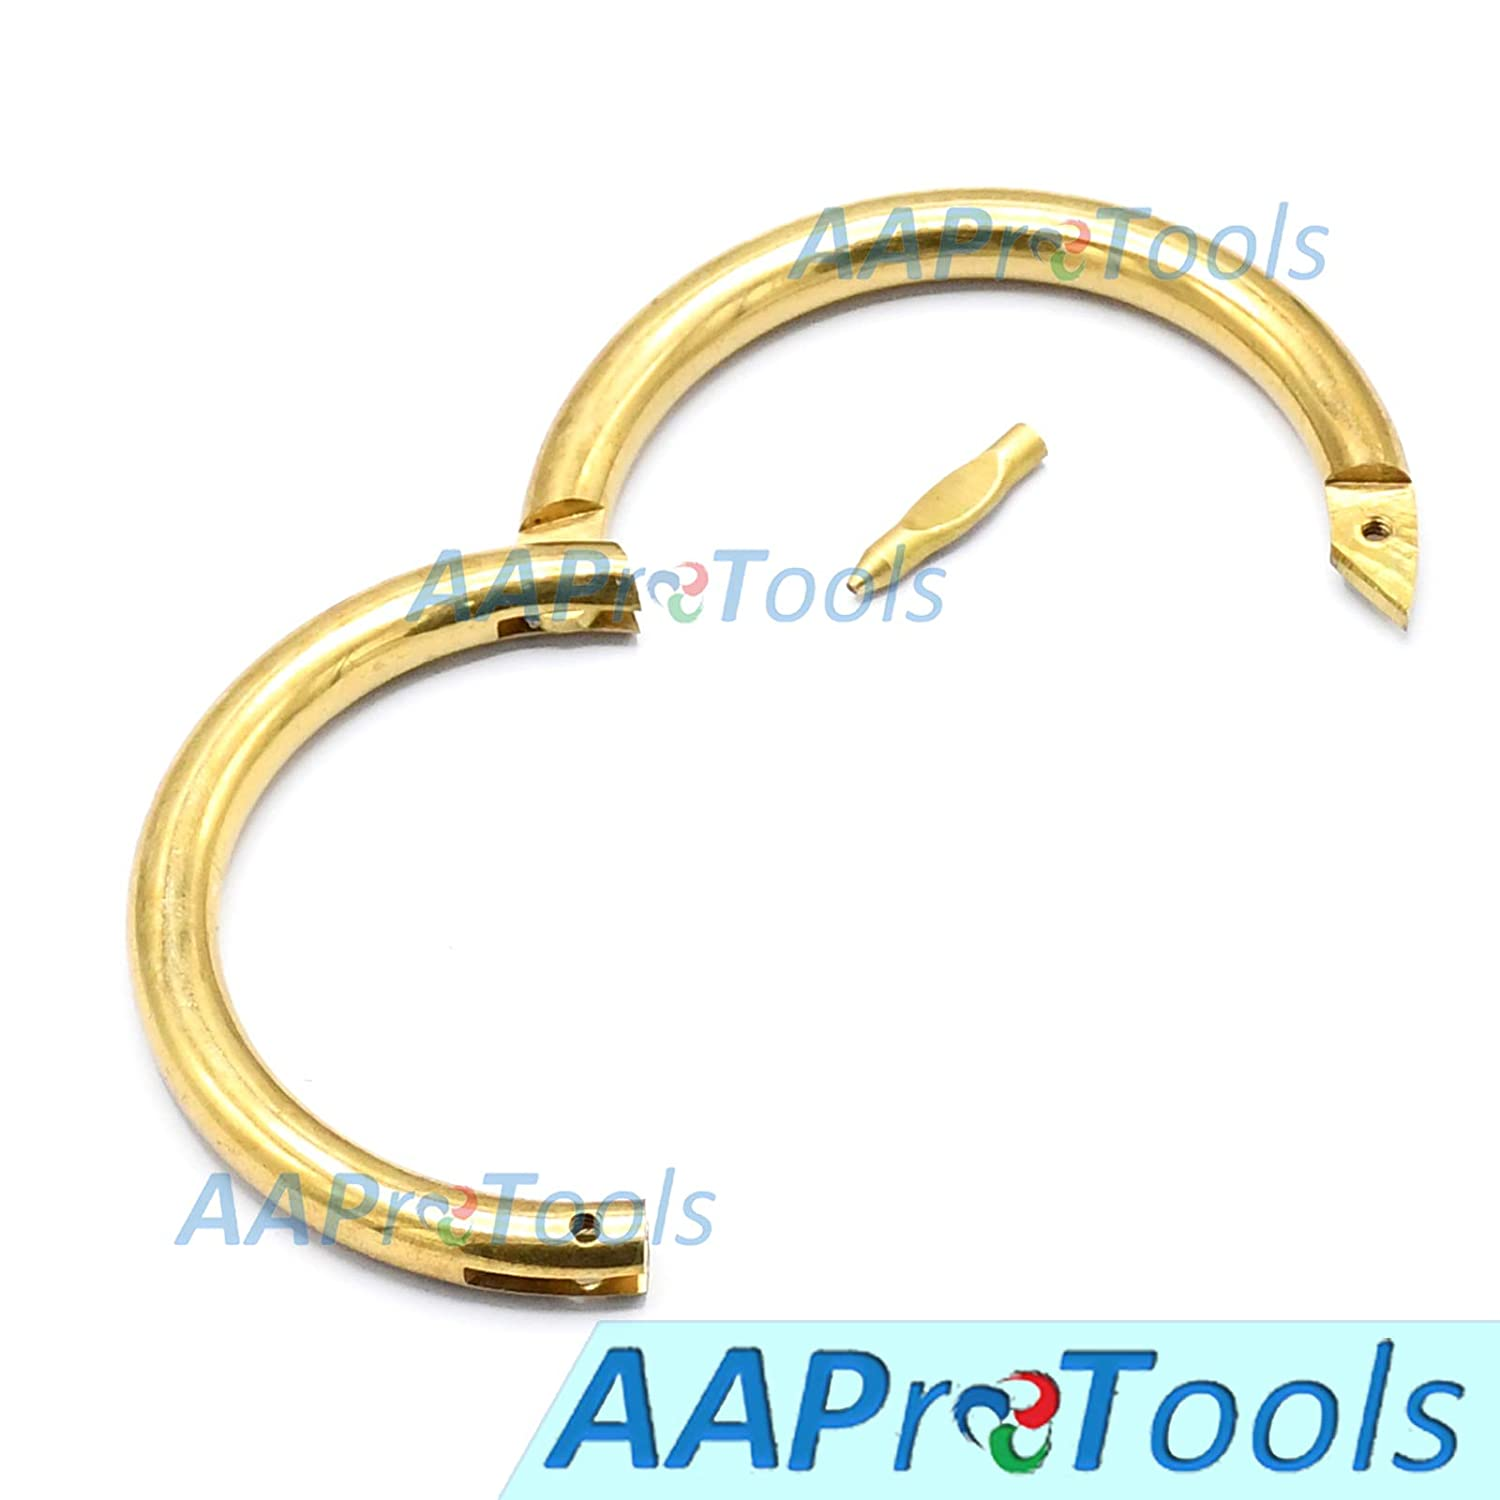 AAProTools Bull Cow Nose Ring Screw Animal Brass Cattle Farm Ranch Show Halter Livestock Veterinary